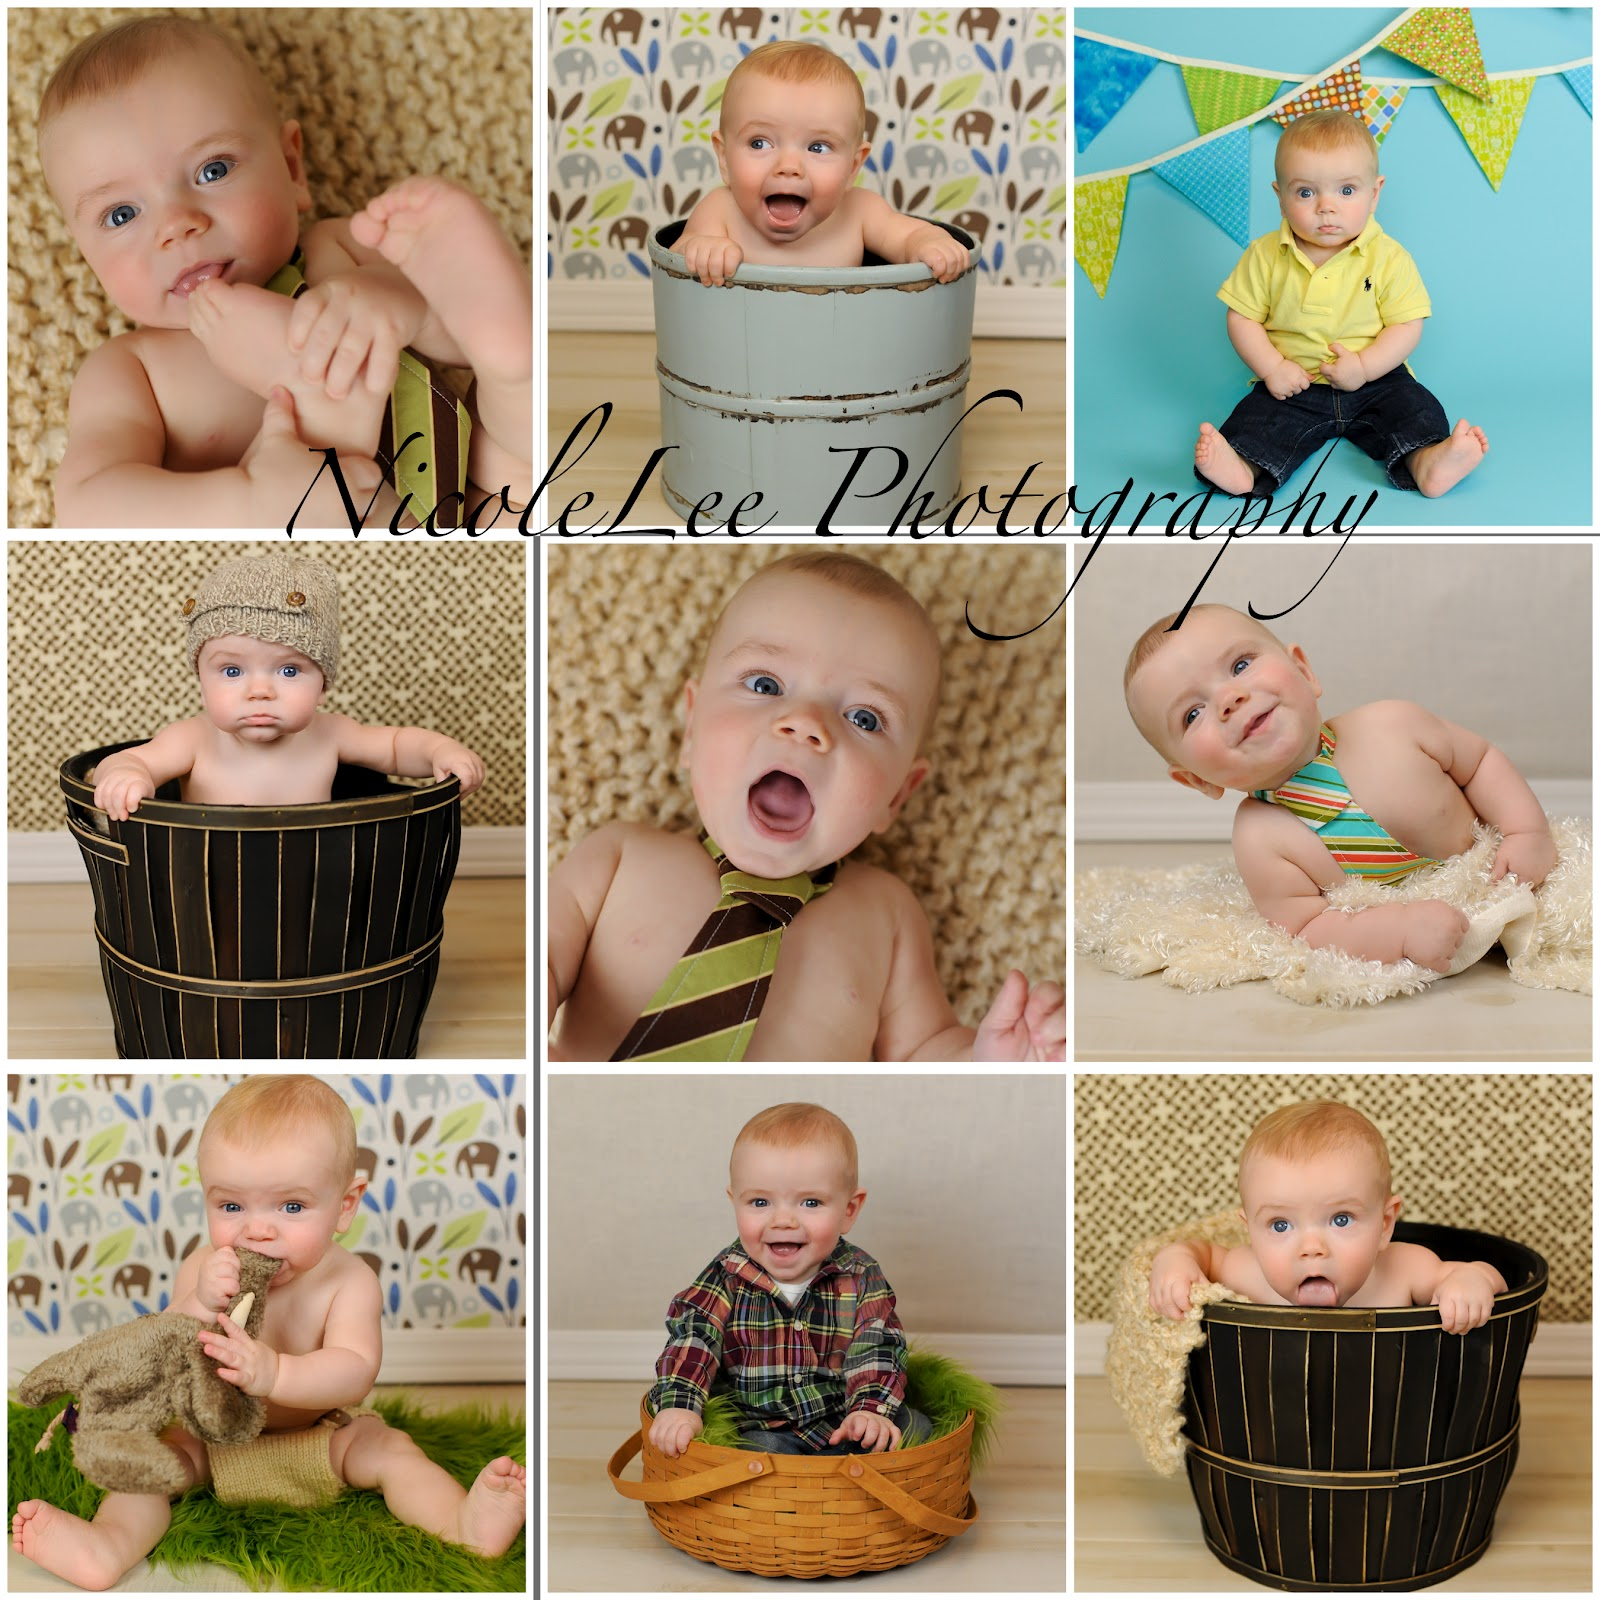 6 month baby picture ideas  baby pictures ideas 6 months